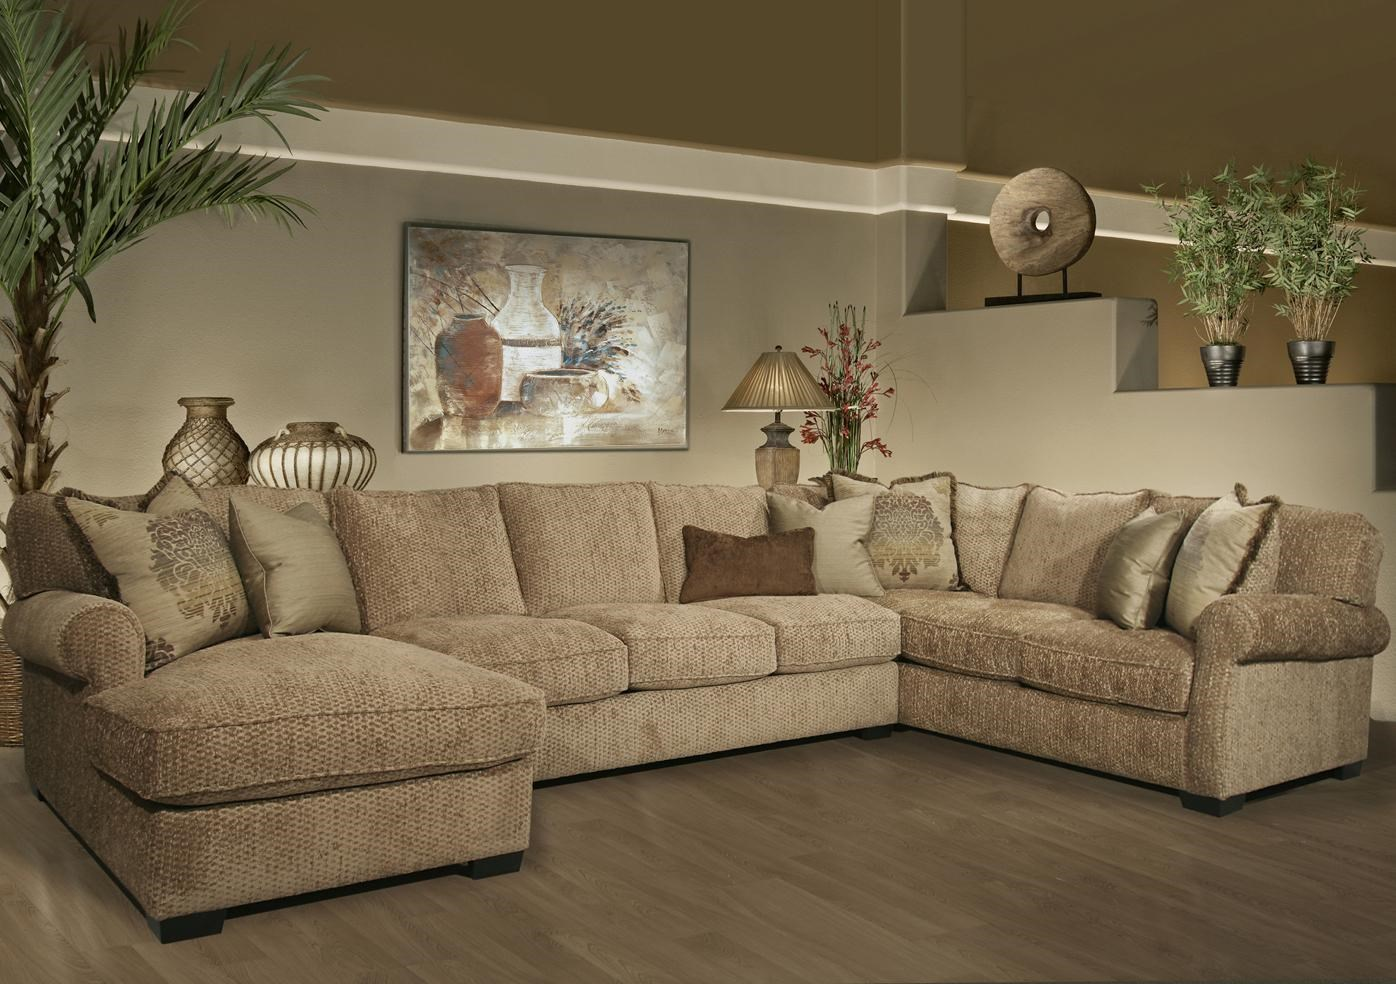 Fairmont Designs Rio Grande 3 Piece Sectional